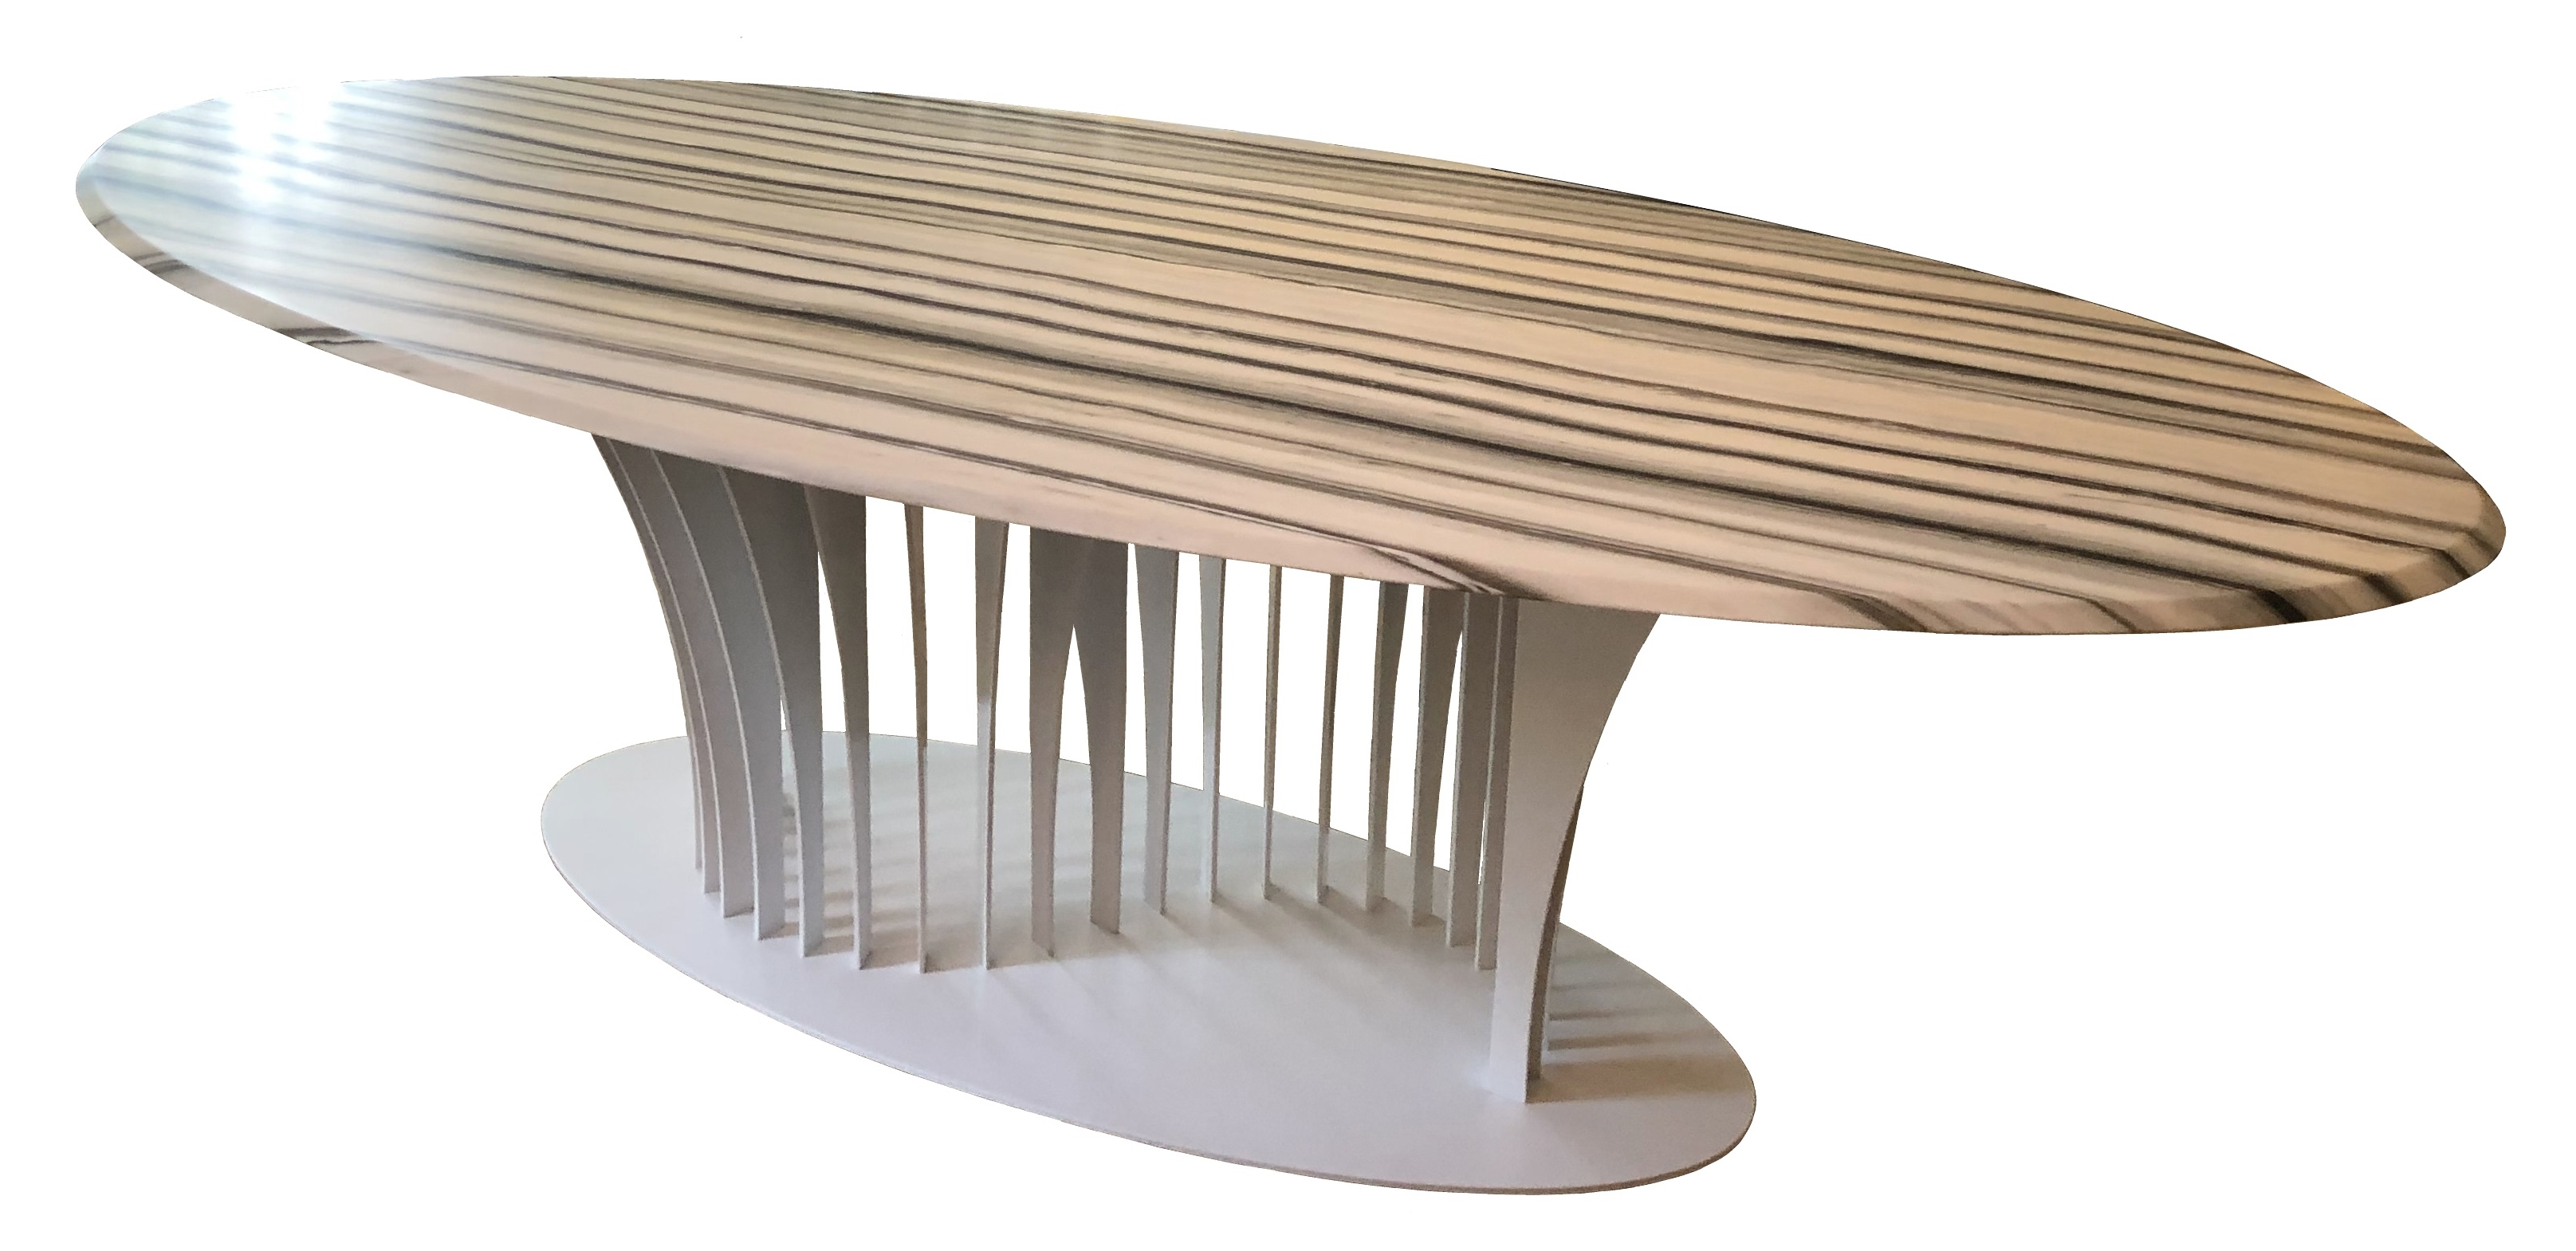 Table with Zebrino marble and white laquered structure.